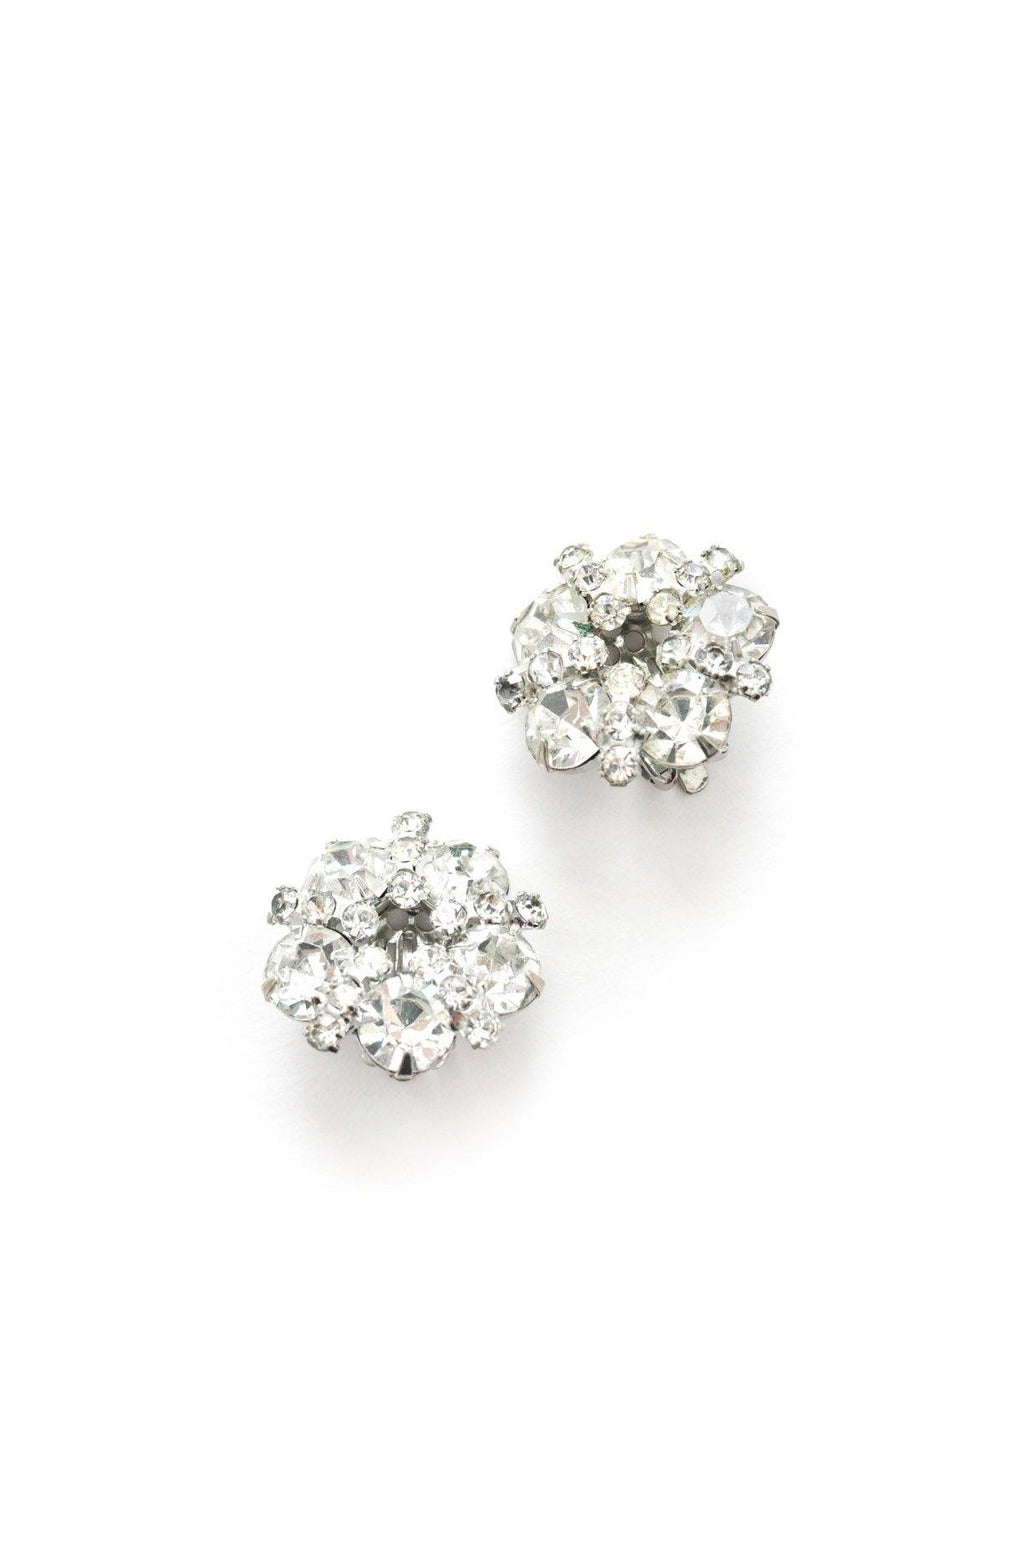 Rhinestone Wreath Clip-on Earrings